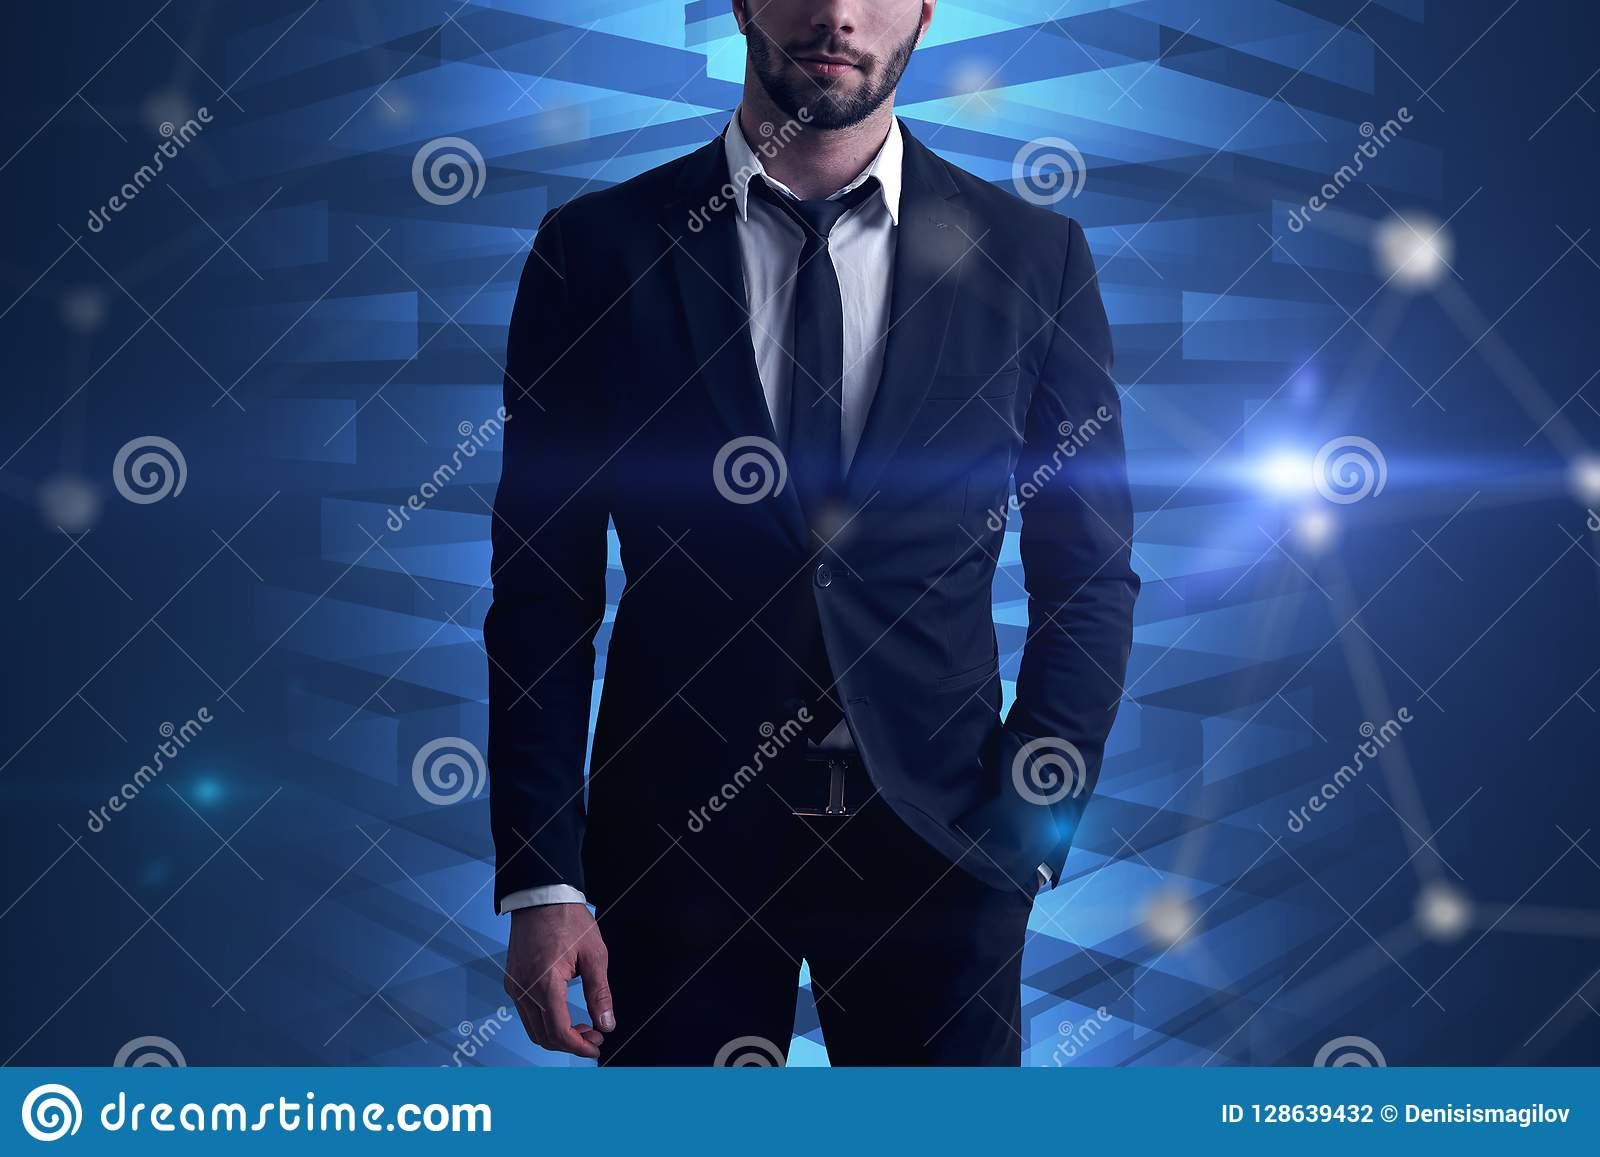 Businessman network and graphs, blue interface